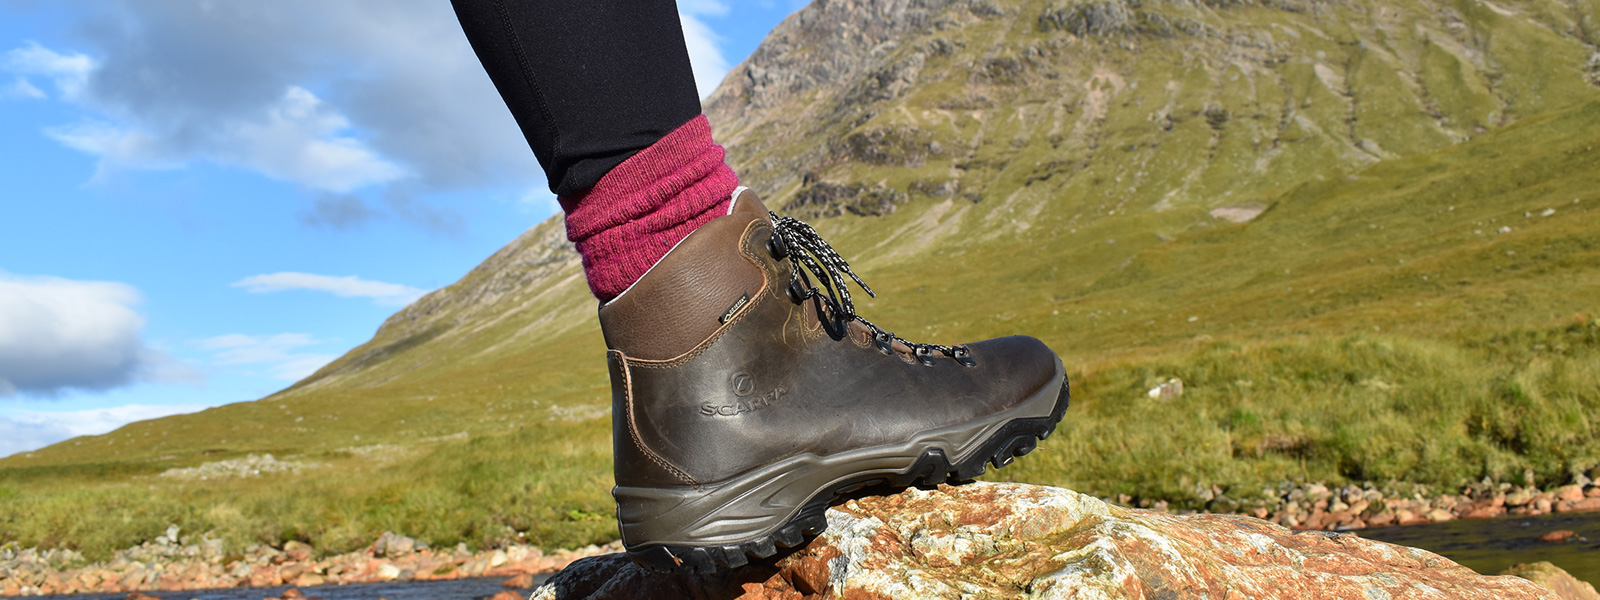 081ecae391e This boot is really aimed at recreational trail and light hillwalkers